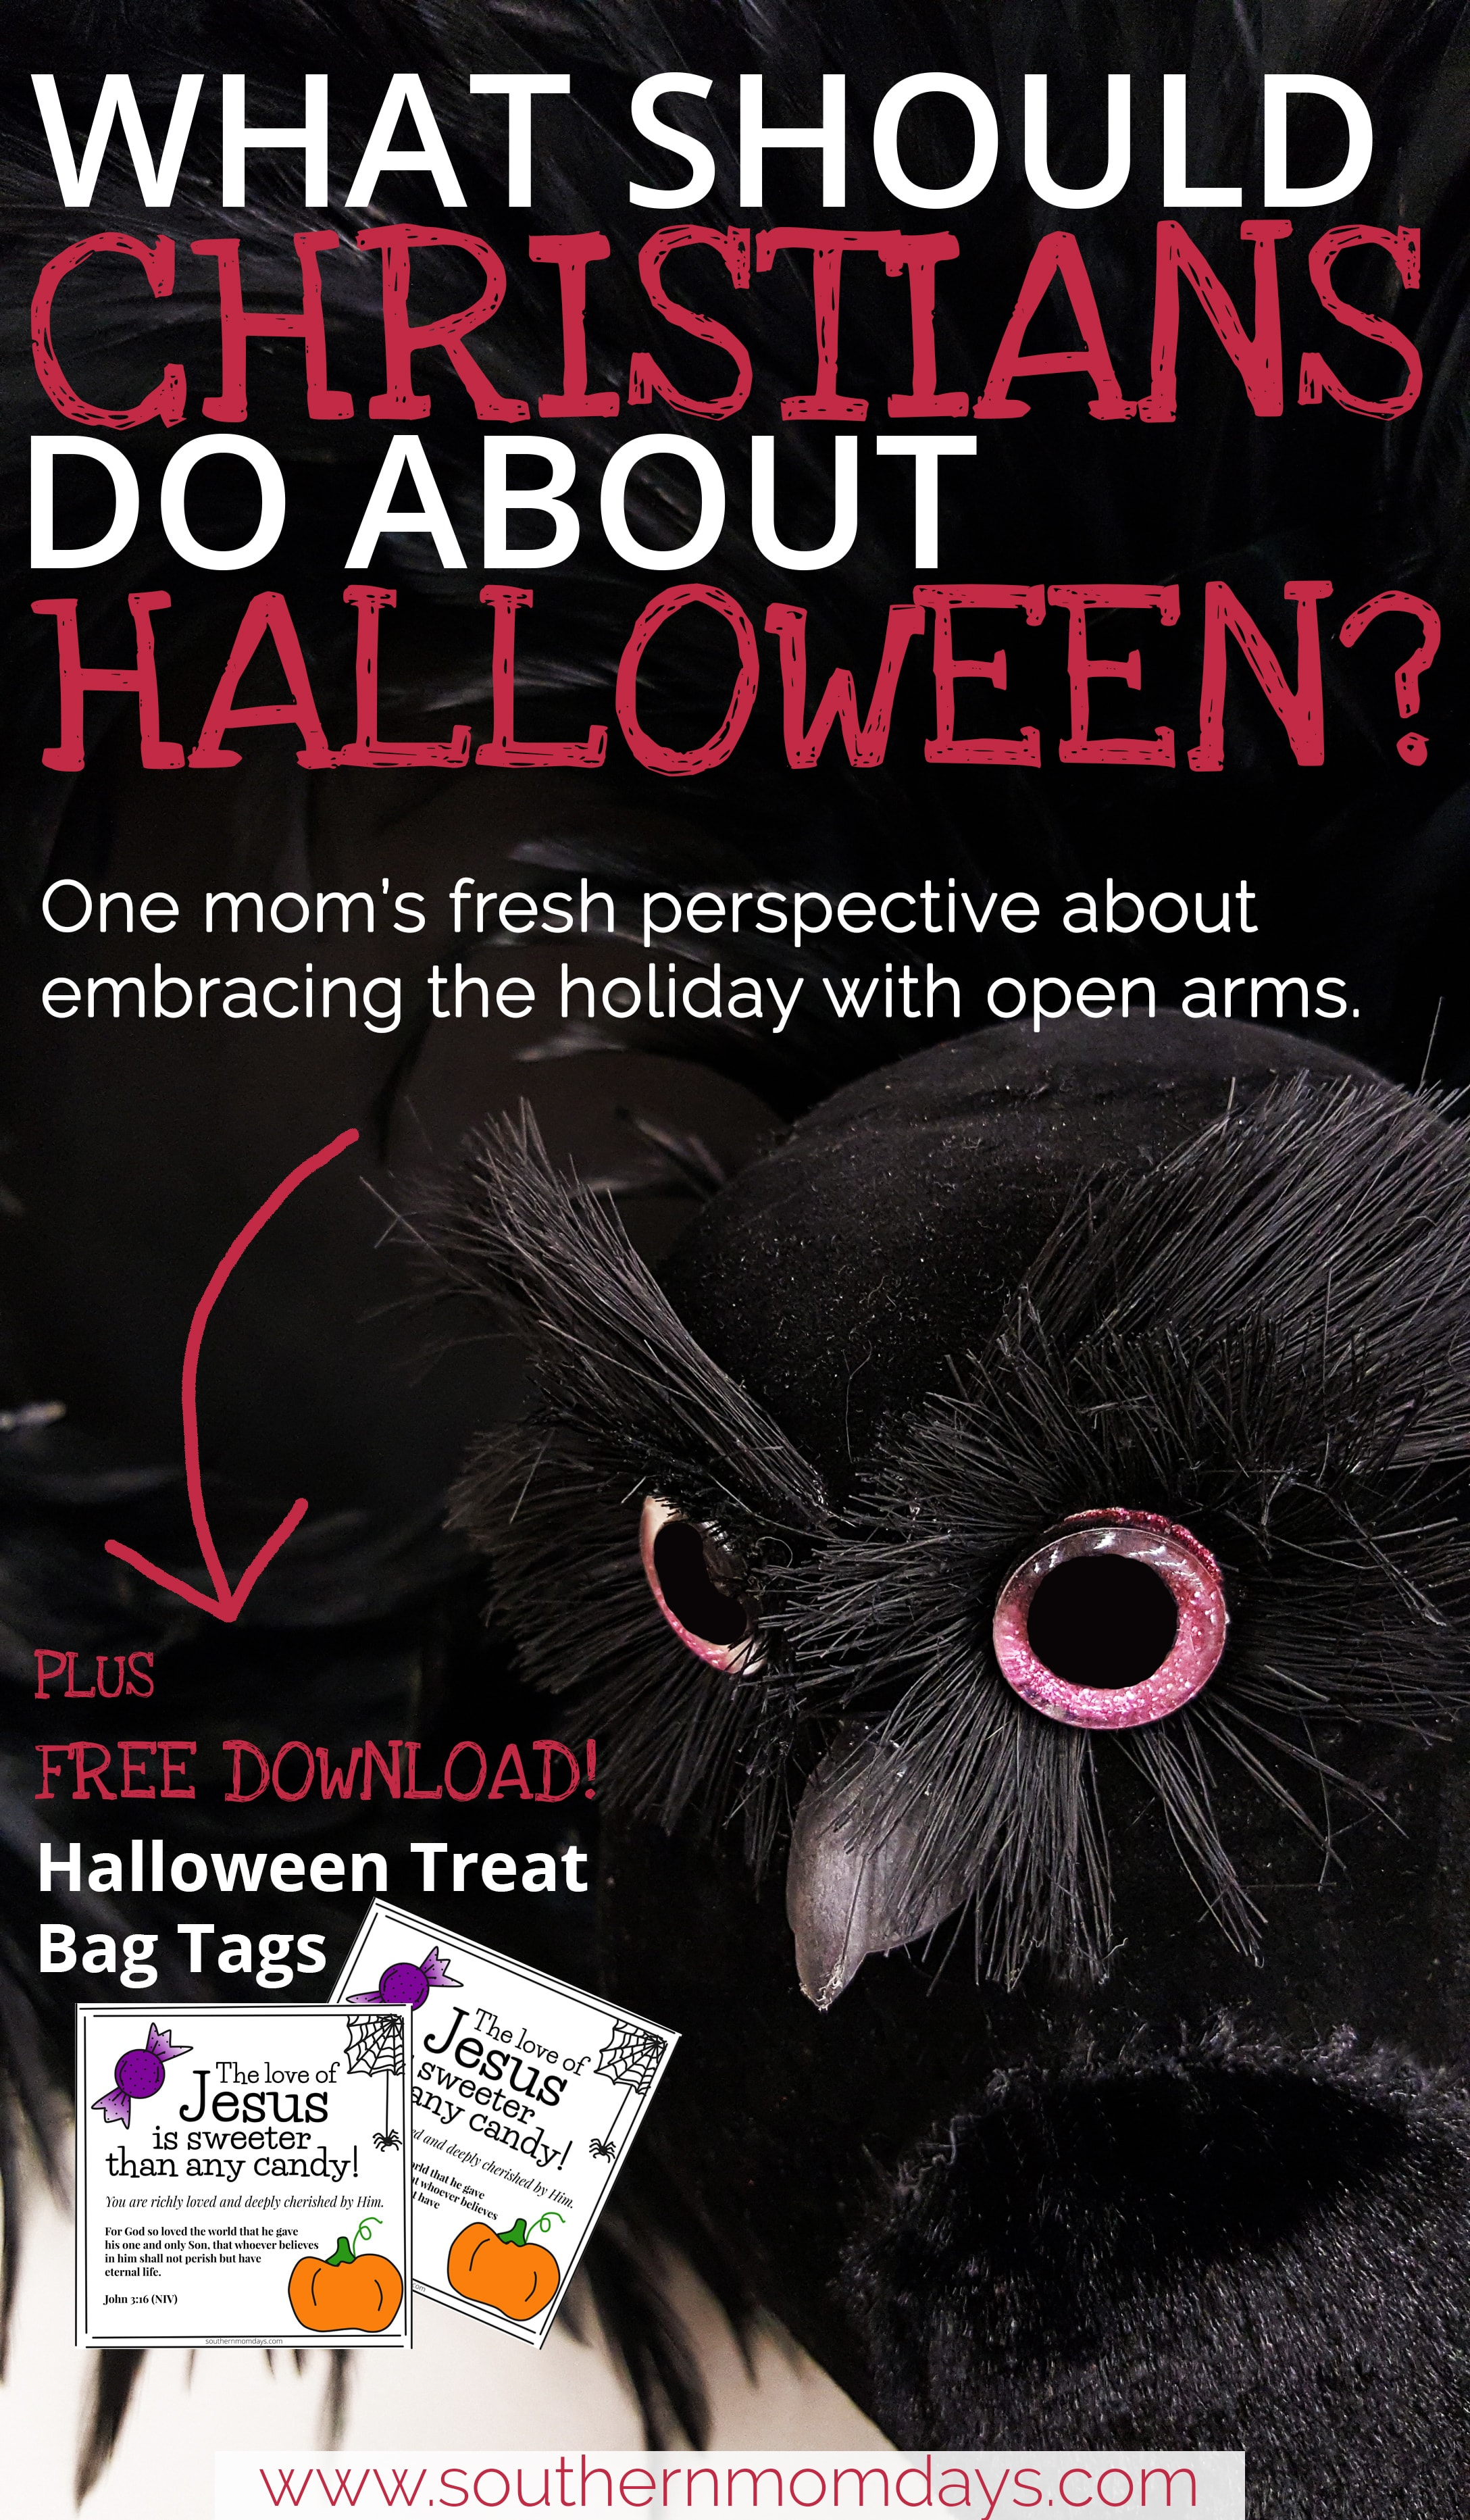 what should christians do about halloween? - southern momdays